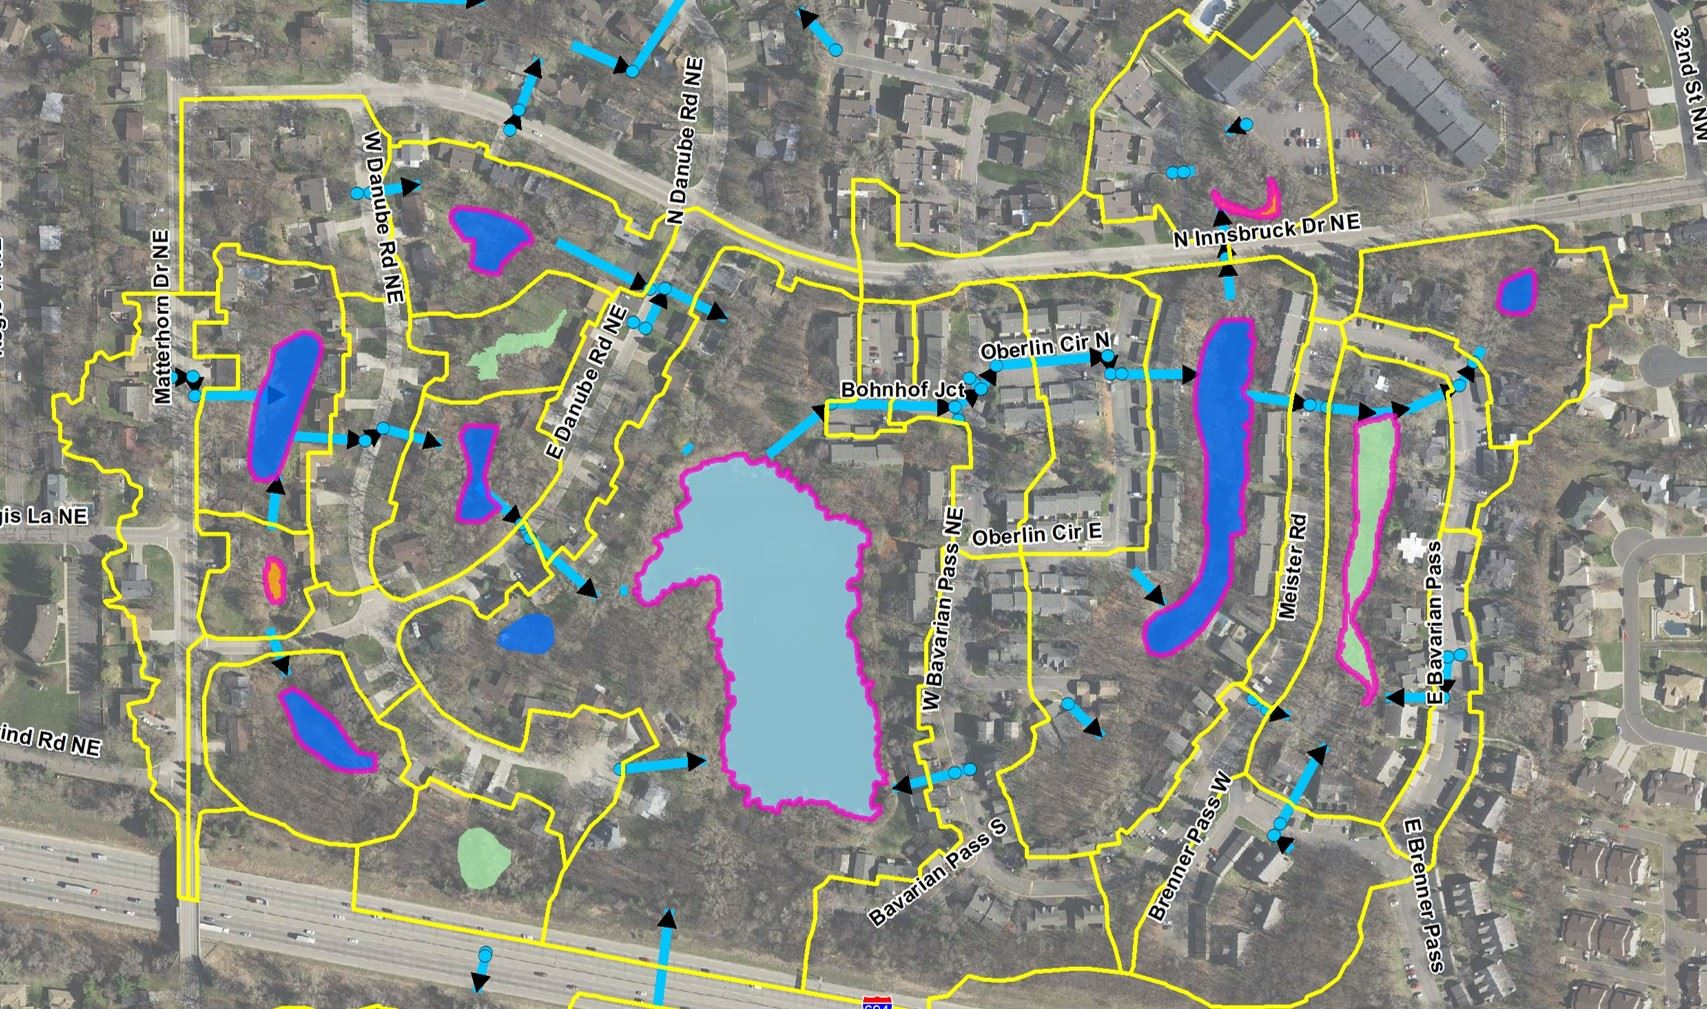 Farr Lake Stormwater System